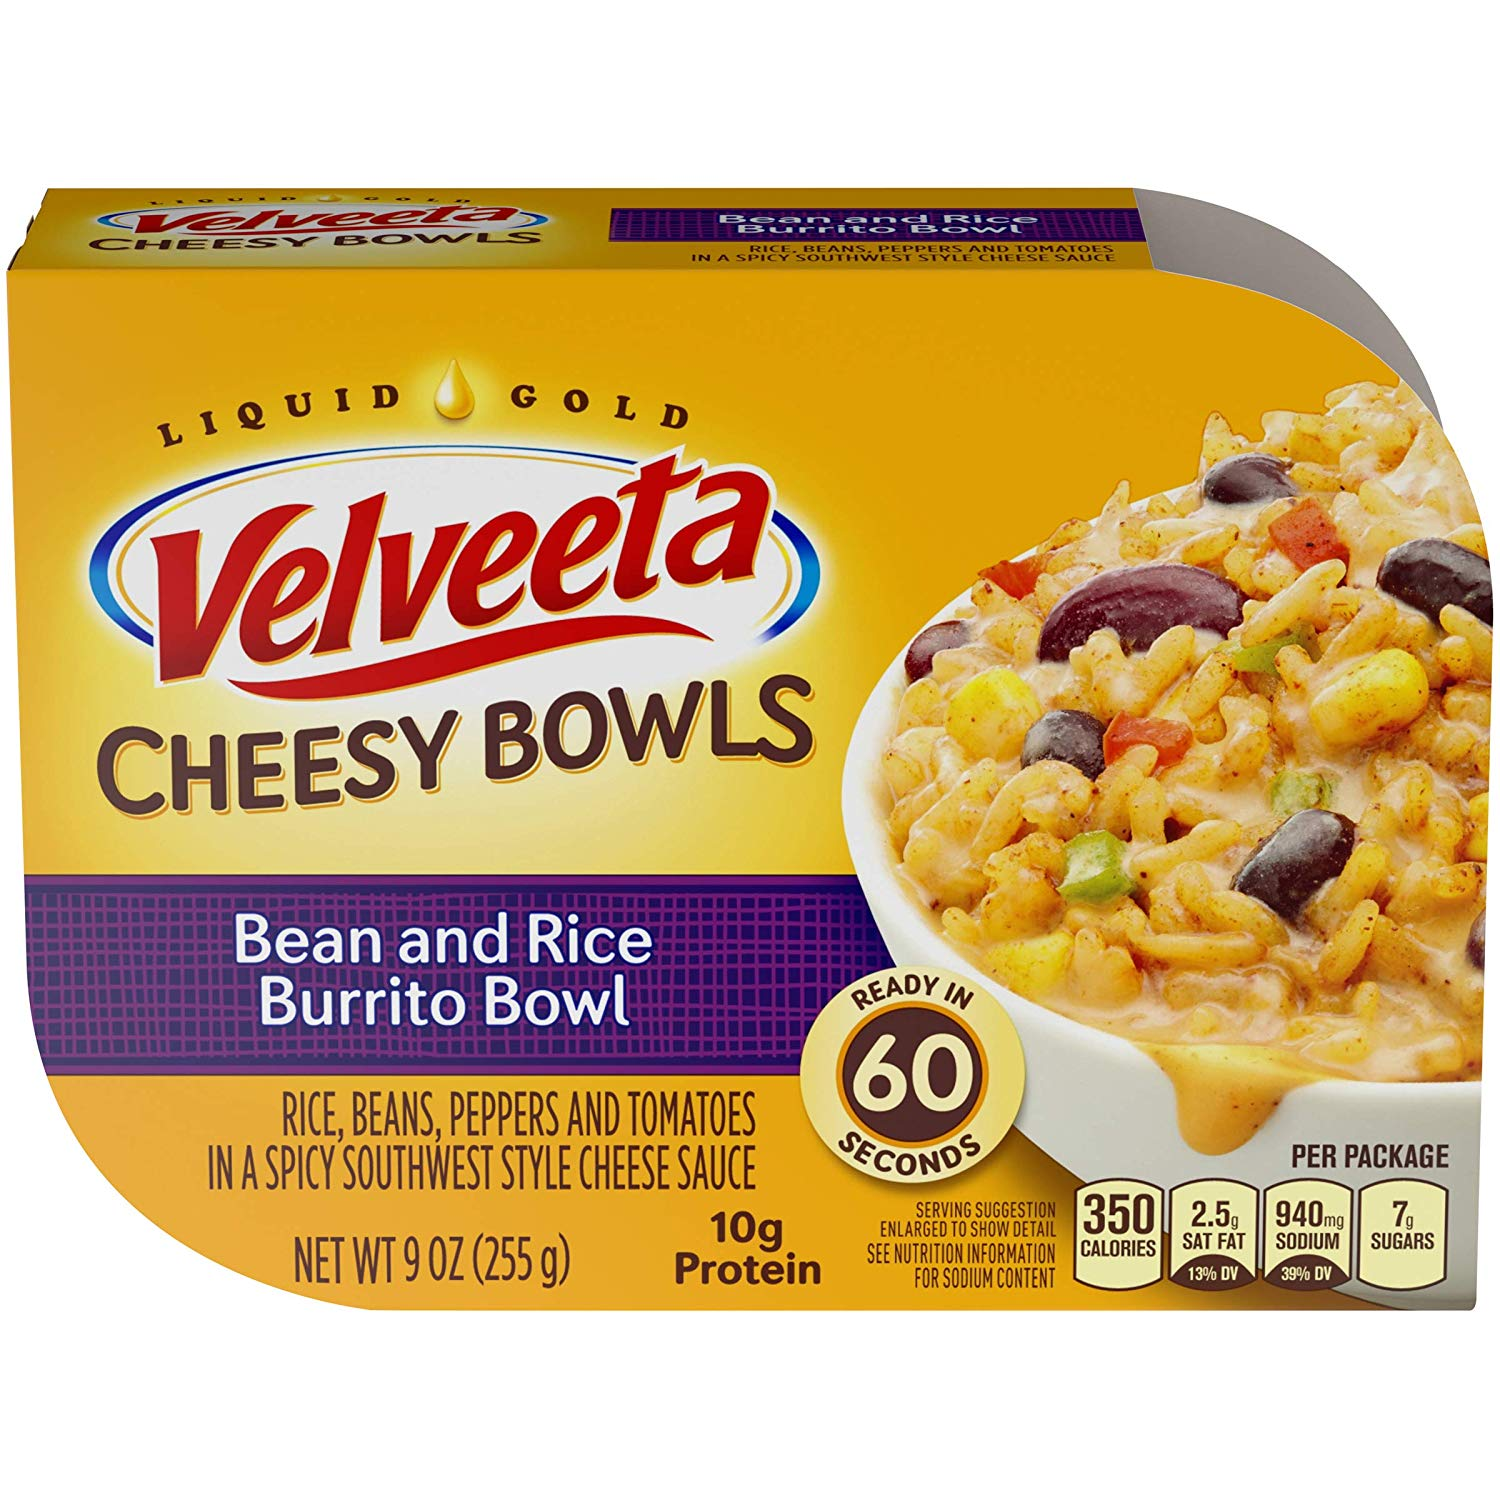 Velveeta Cheesy Bowls Bean & Rice Burrito Bowl